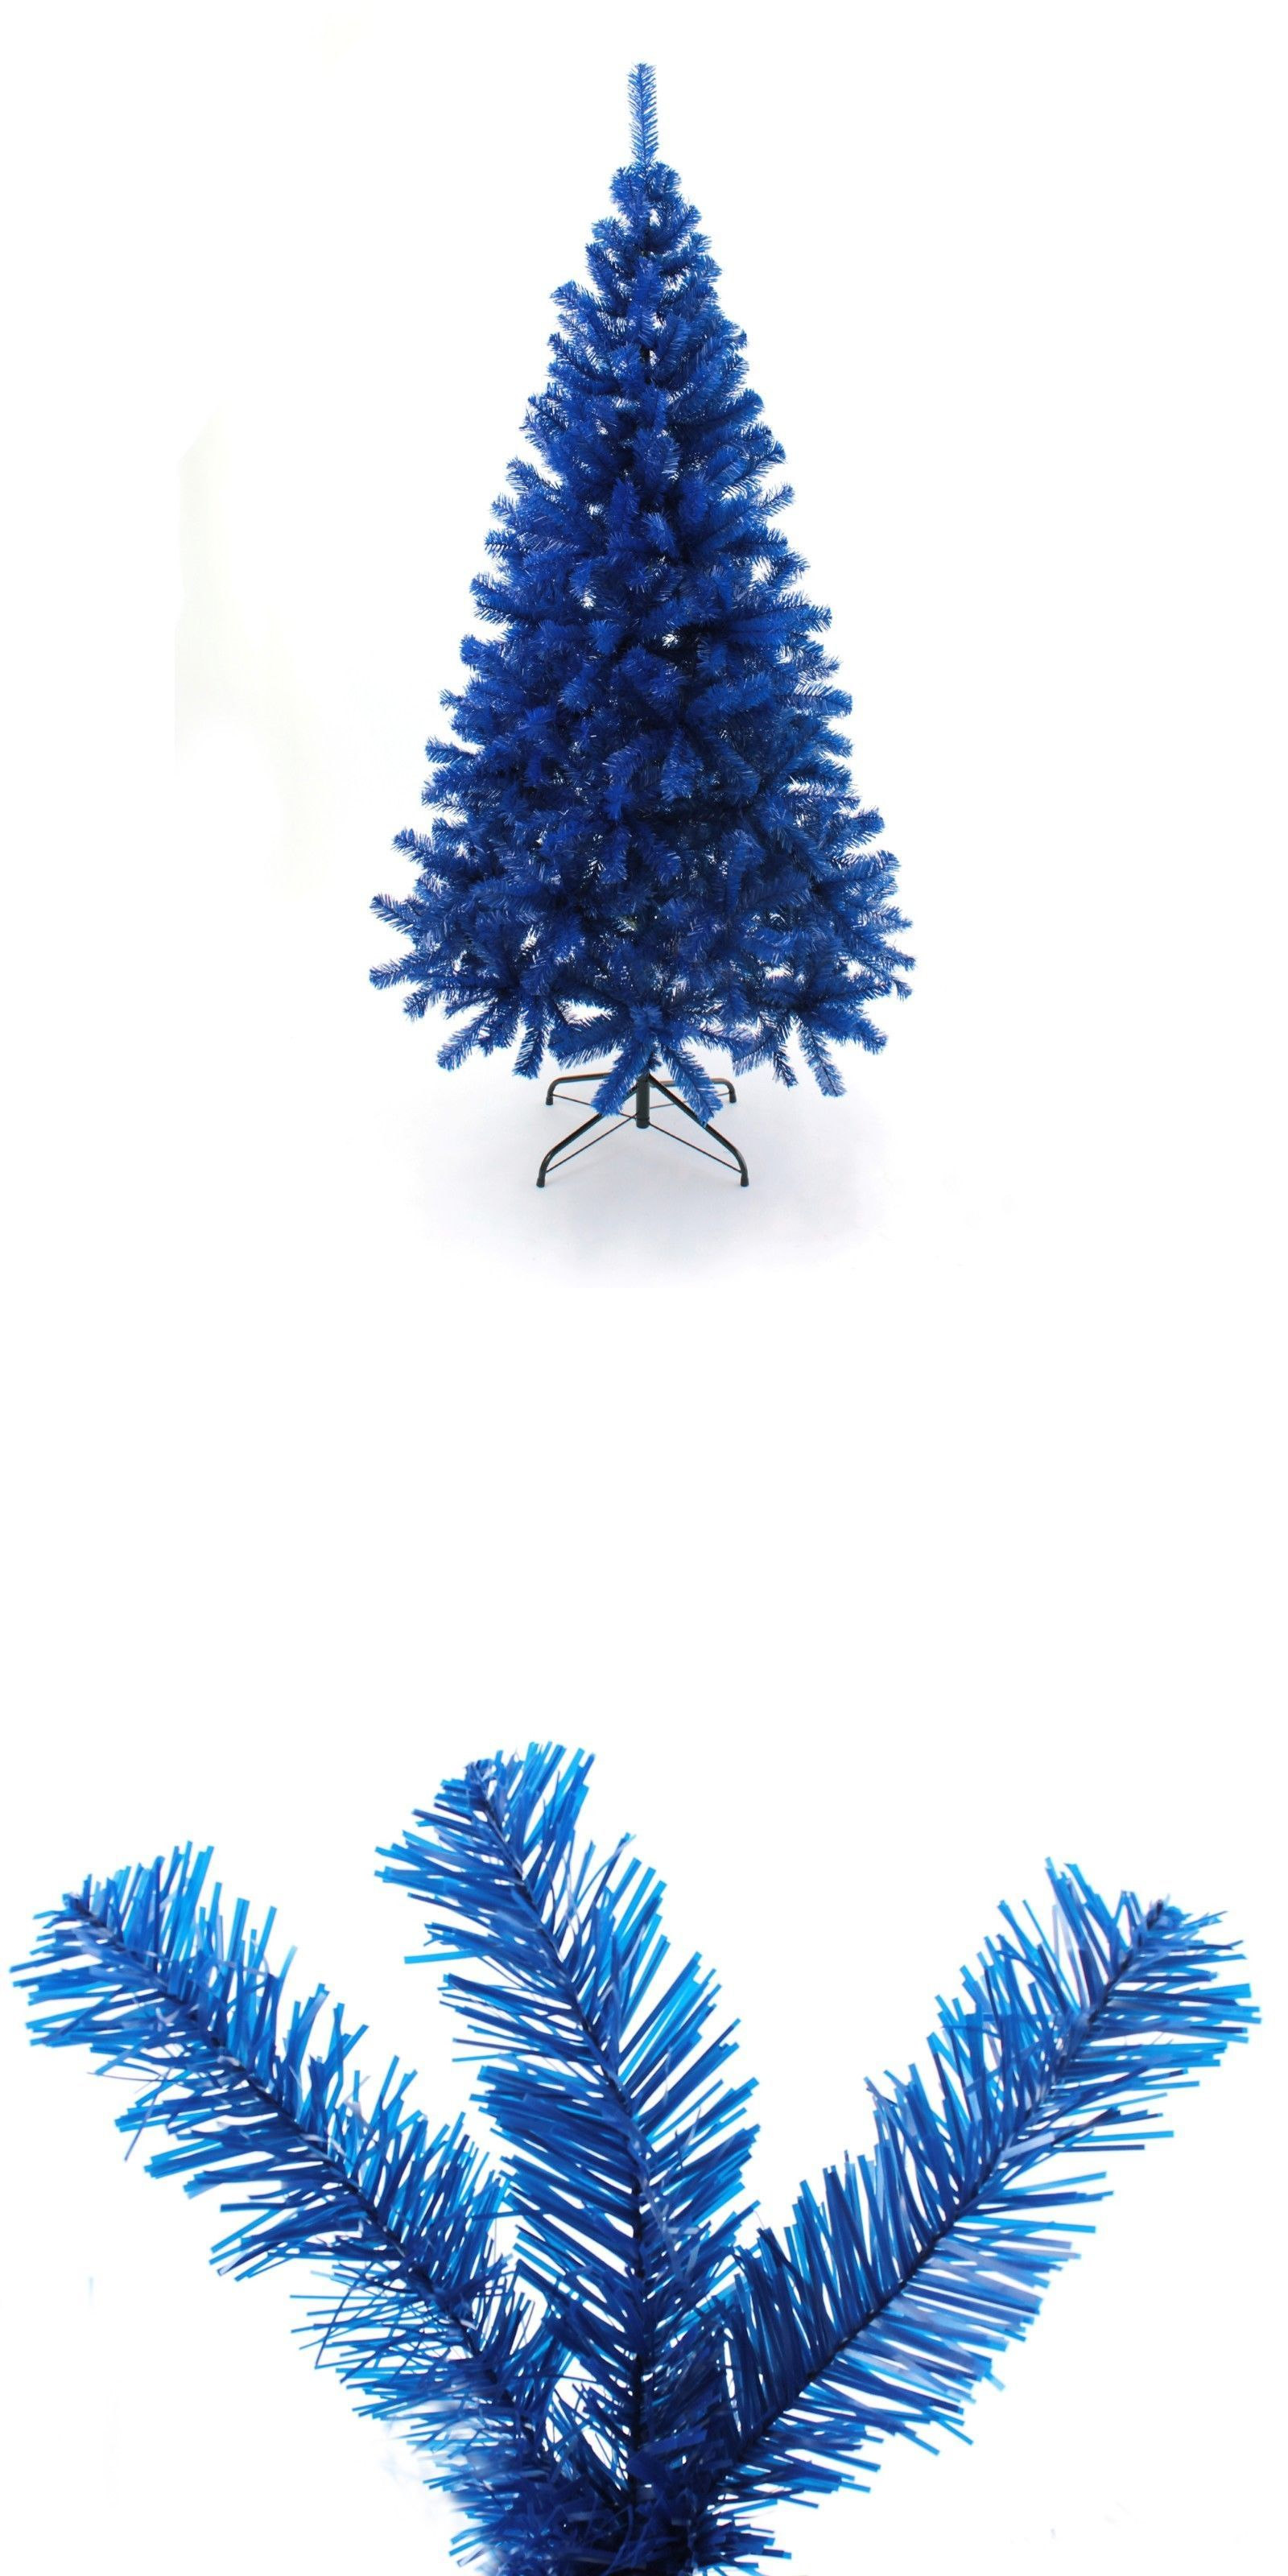 Artificial Christmas Trees 117414 Perfect Holiday Christmas Tree Blue 4 5 6 7 Feet Buy Artificial Christmas Tree Christmas Tree Sale Holiday Christmas Tree